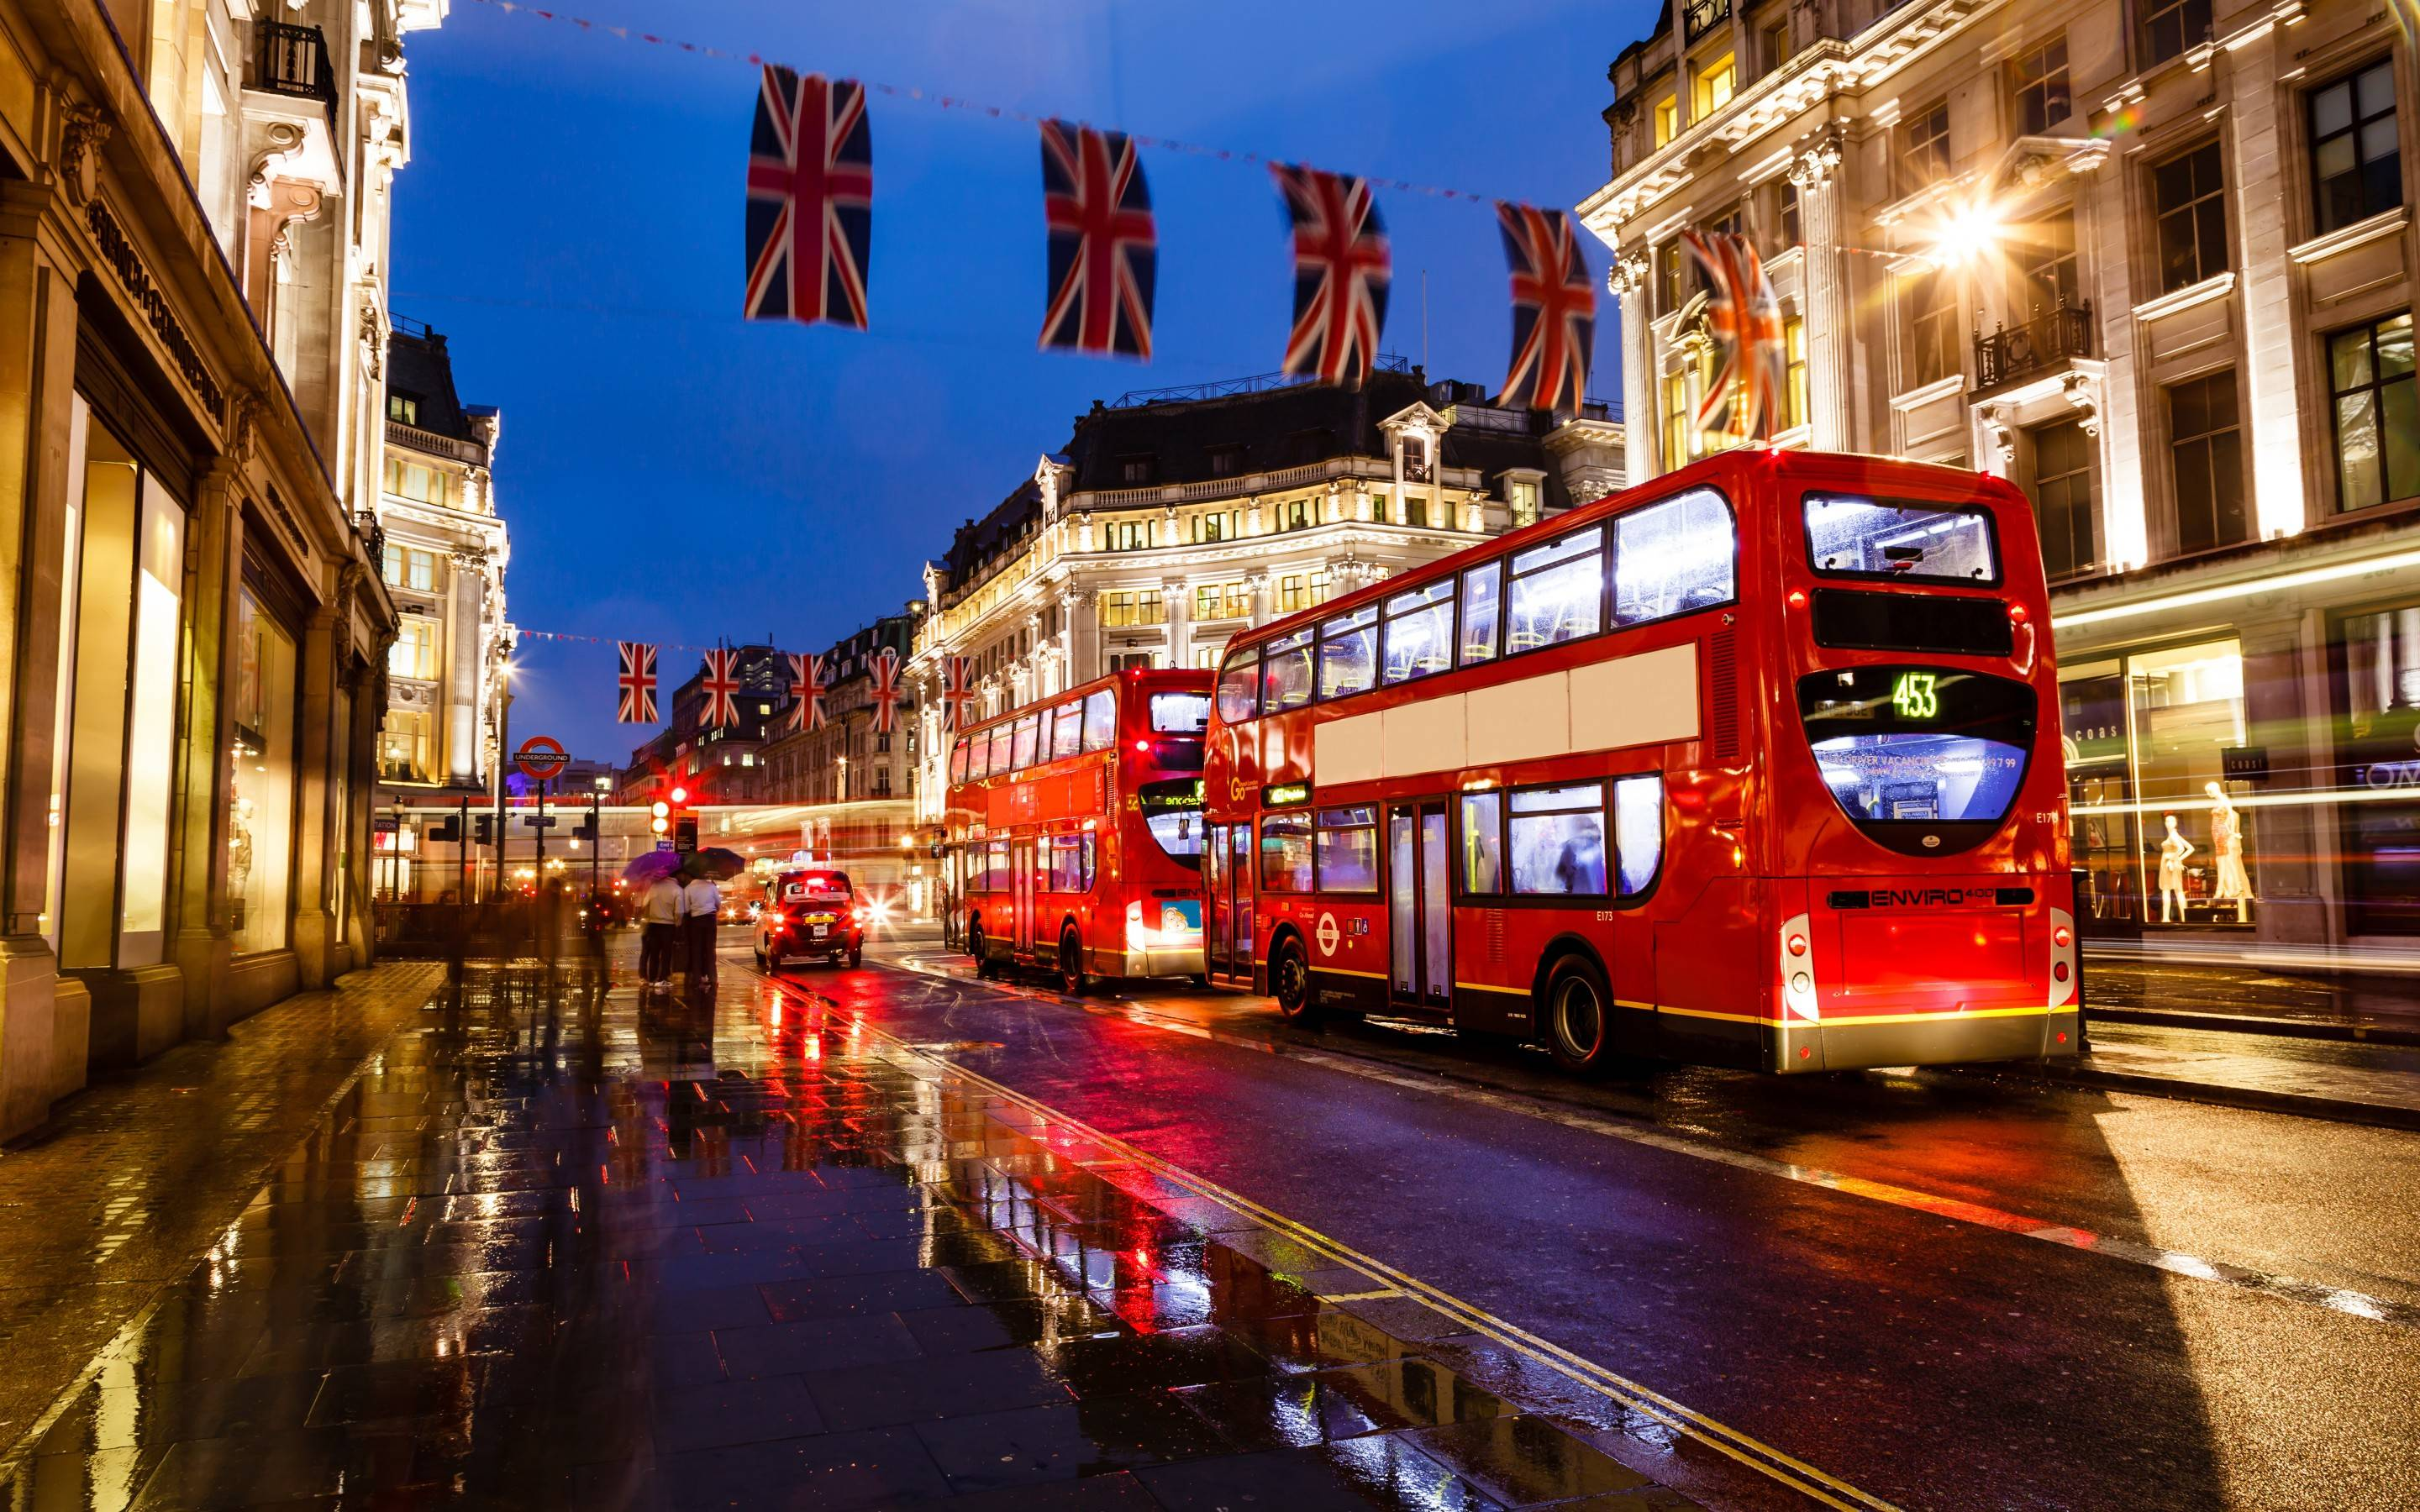 london england wallpapers - wallpaper cave